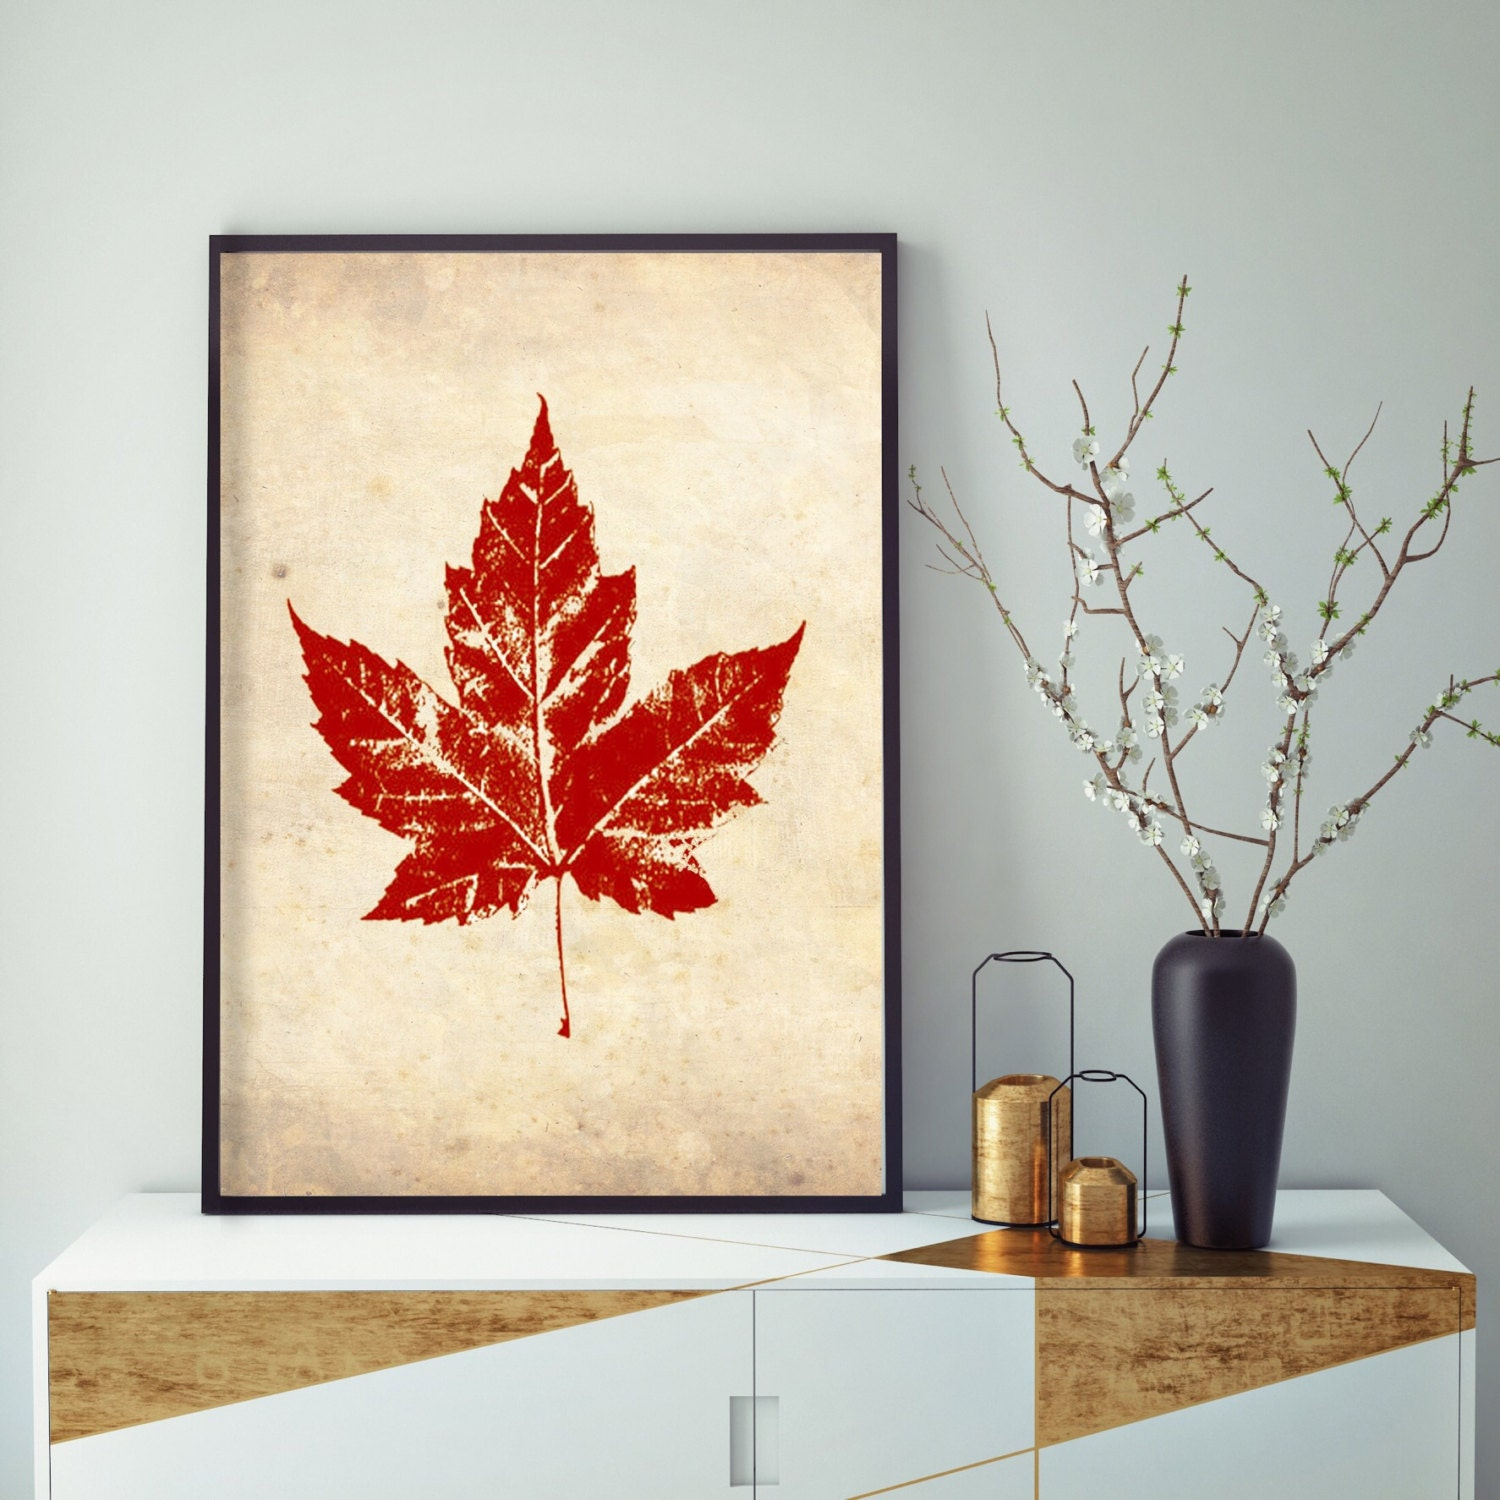 Wall Art Red Leaves : Vintage red maple leaf wall decor fall